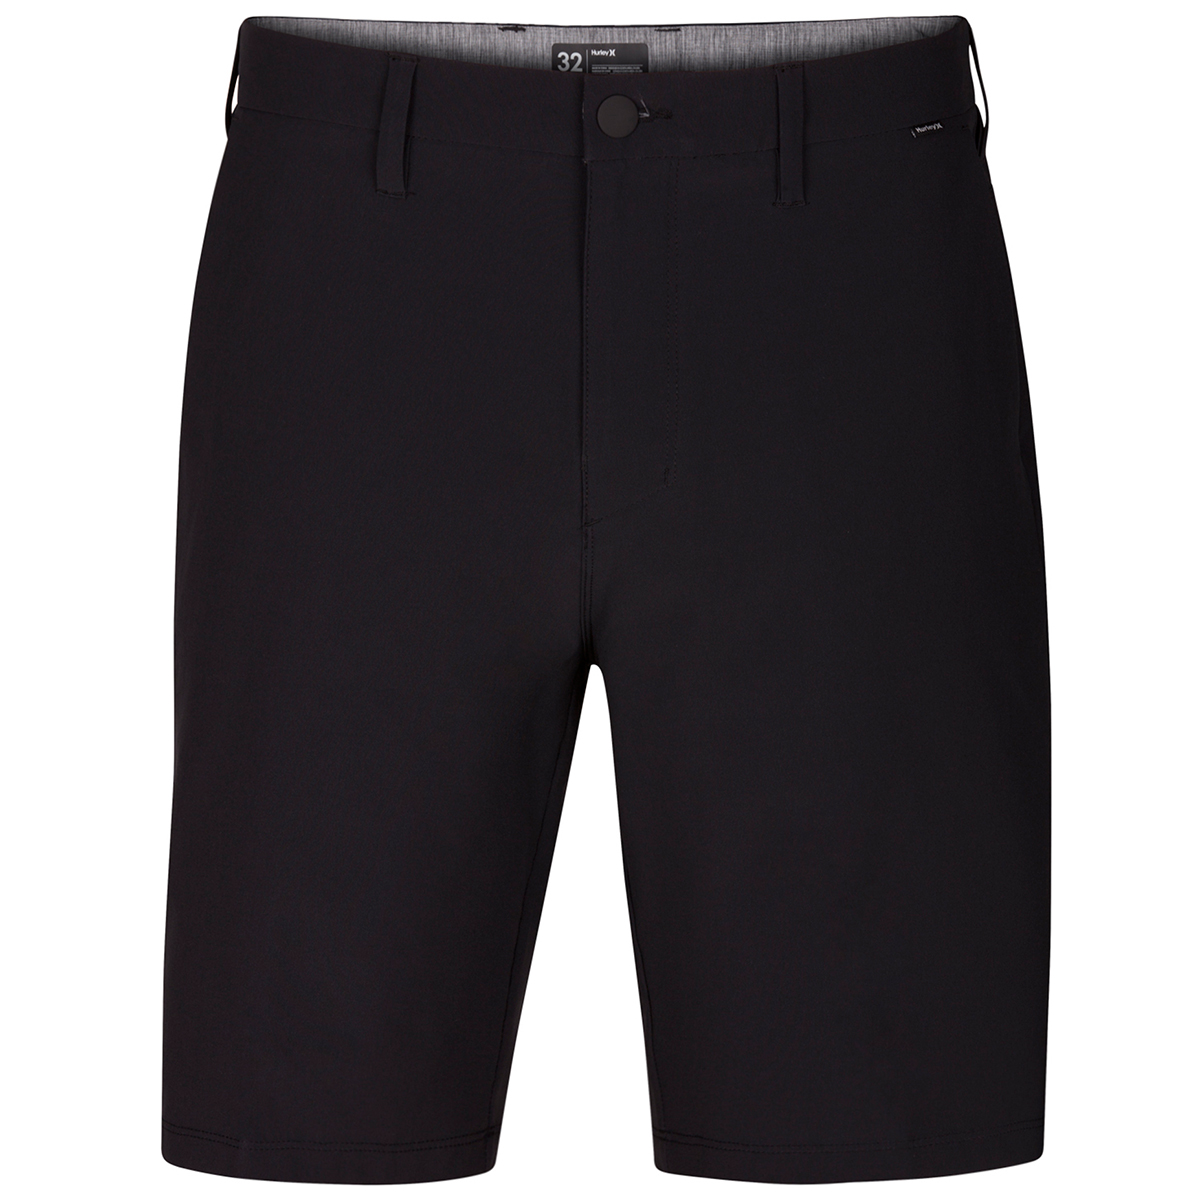 Hurley Men's Phantom Flex Hybrid Walking Shorts - Black, 36